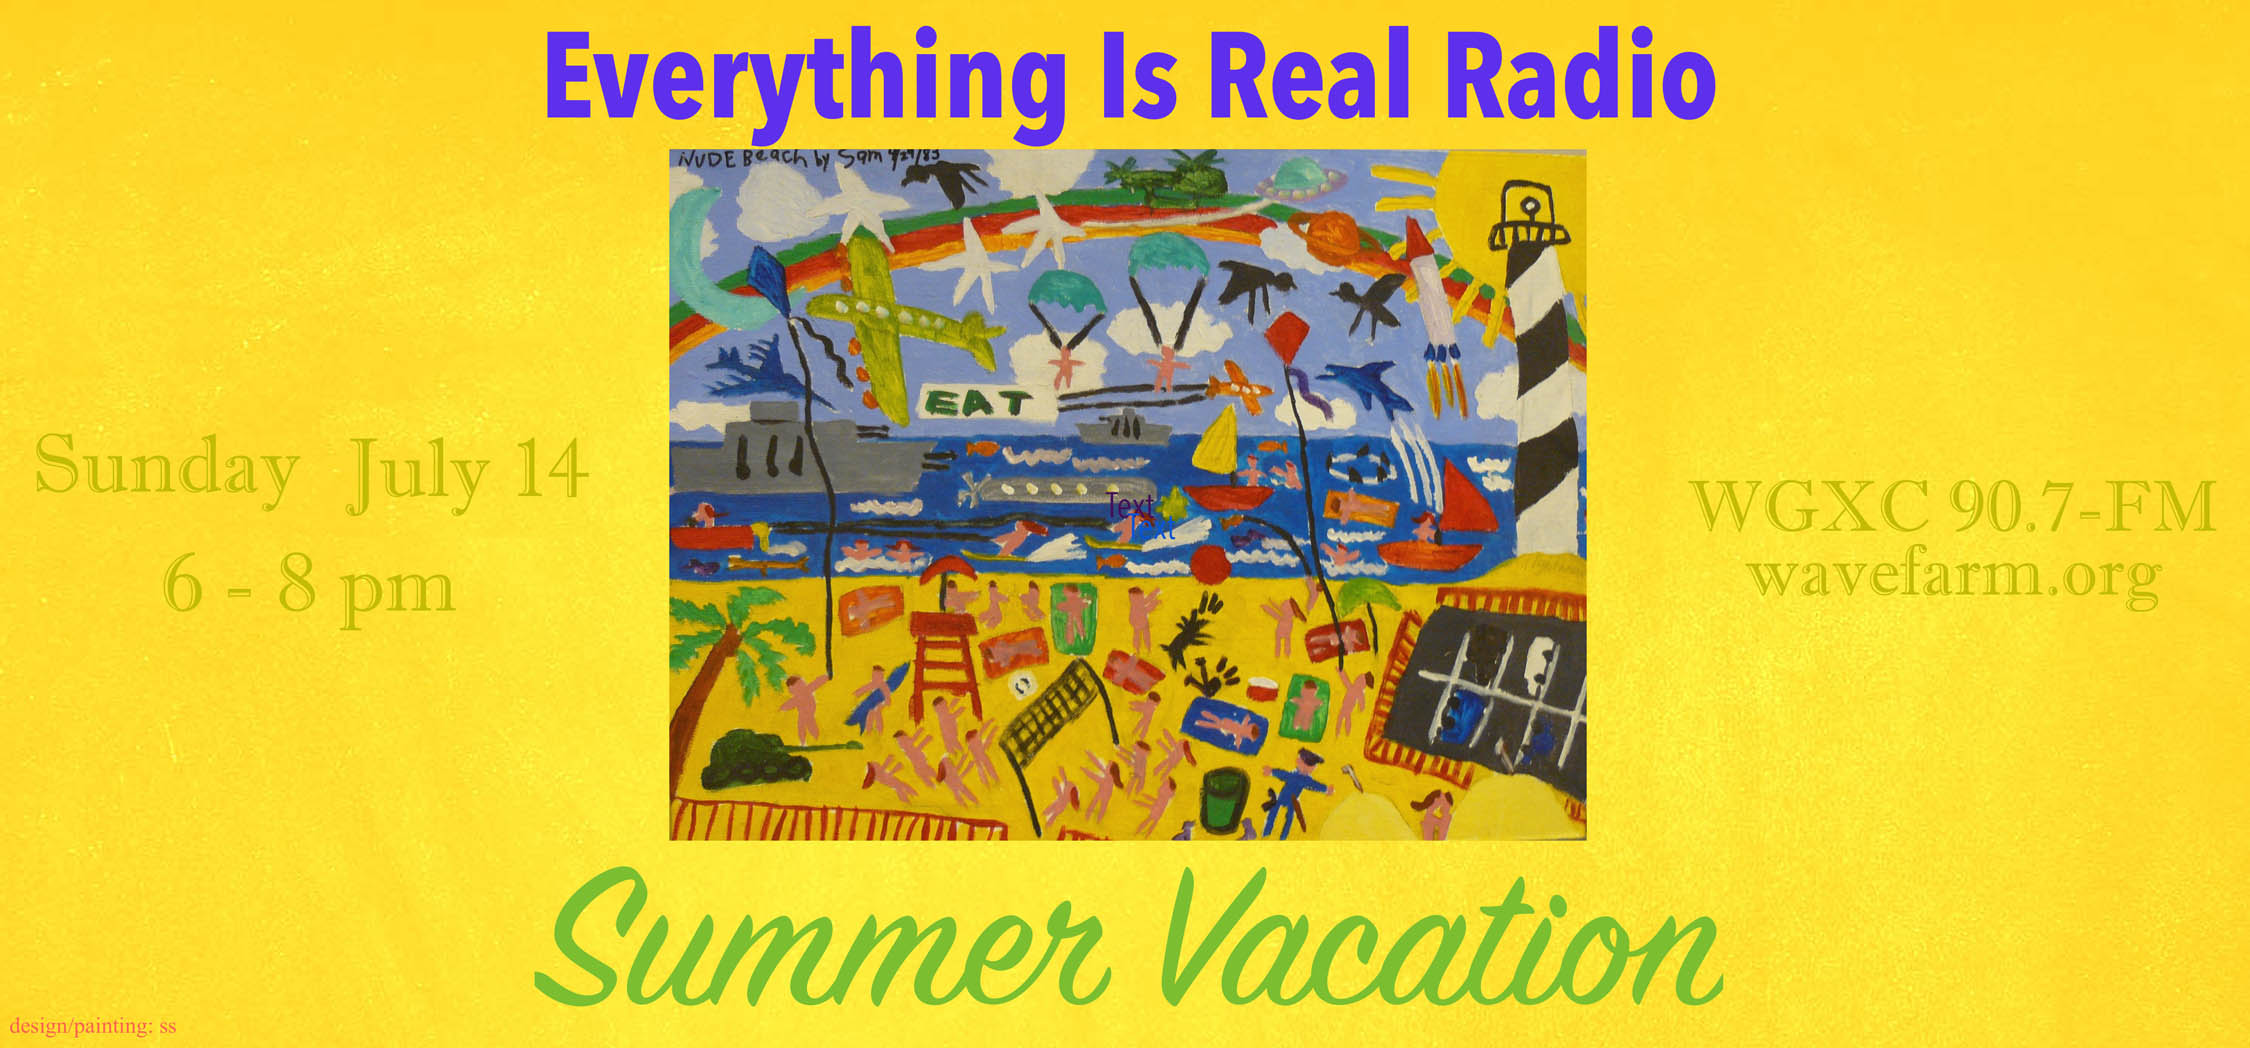 Everything Is Real: Summer Vacation Image